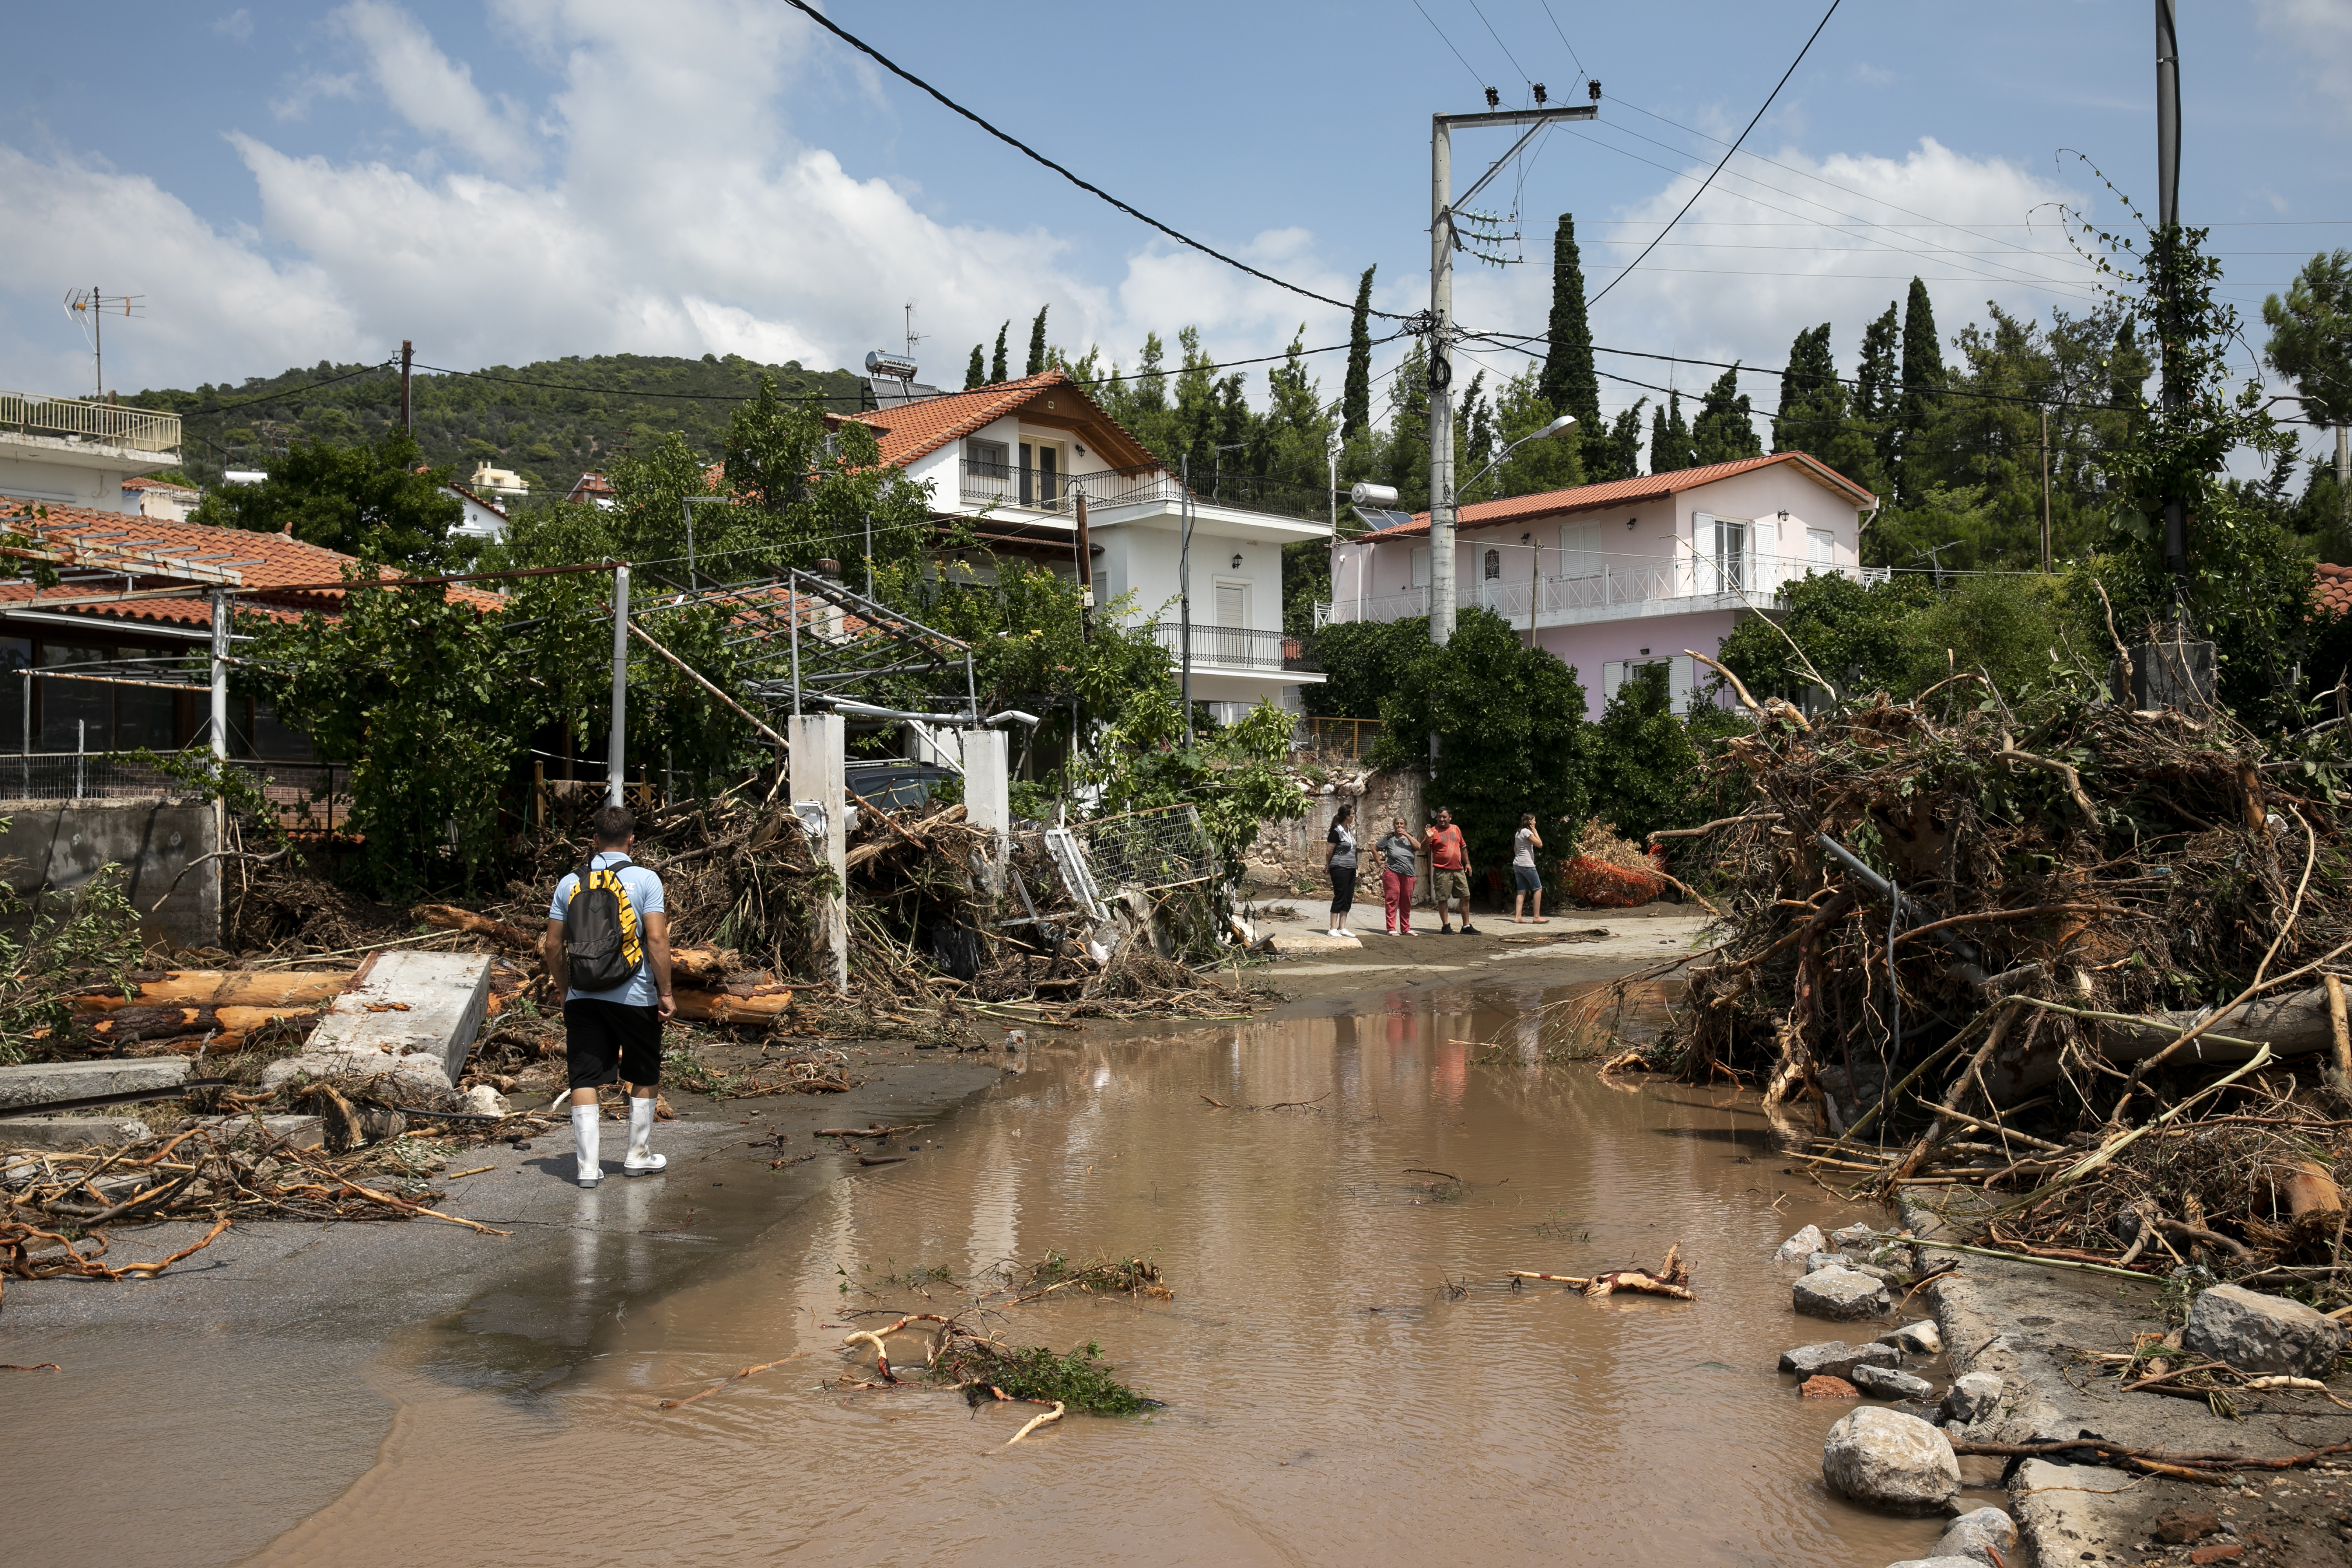 A man walks at a street full of debris following a storm at the village of Politika, on Evia island, northeast of Athens, on Aug. 9, 2020.